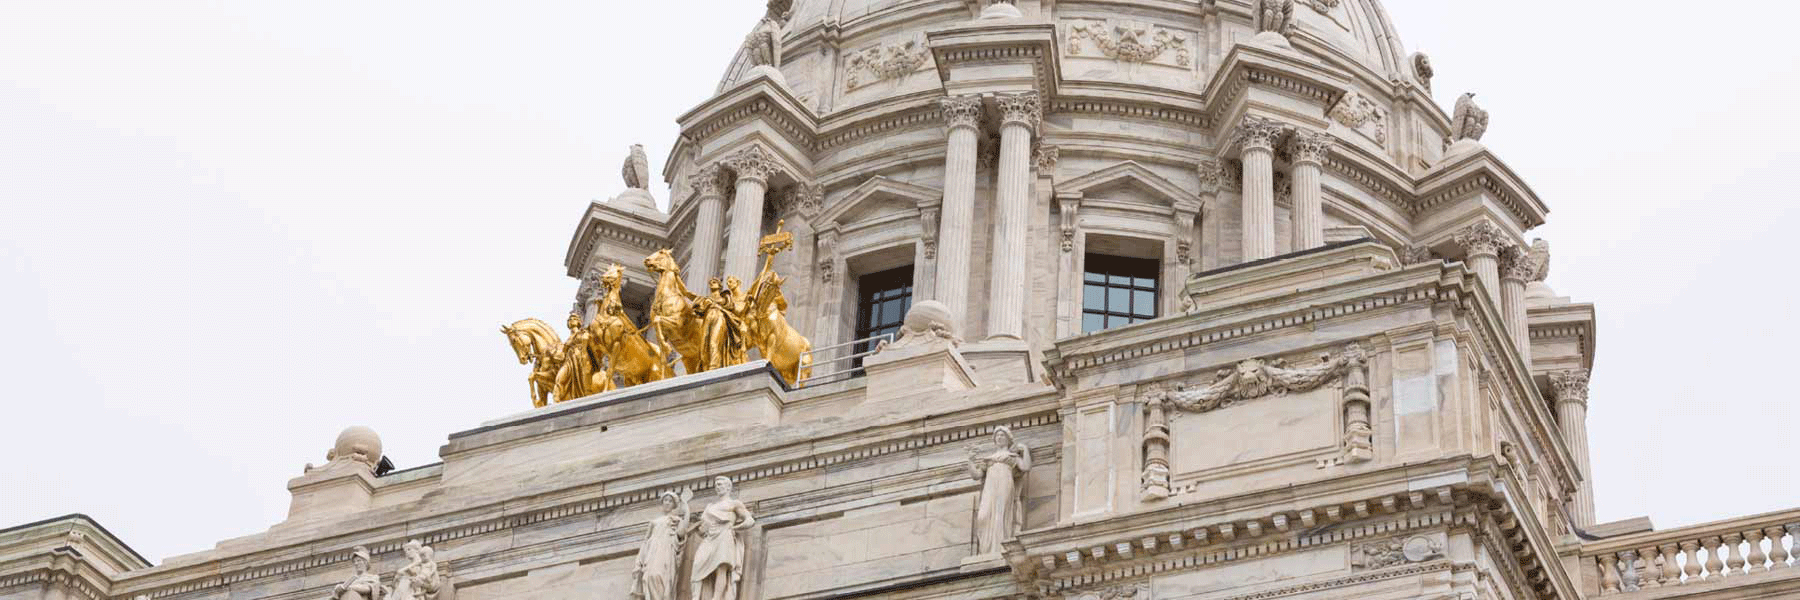 Minnesota State Capitol dome and Quadriga golden sculpture